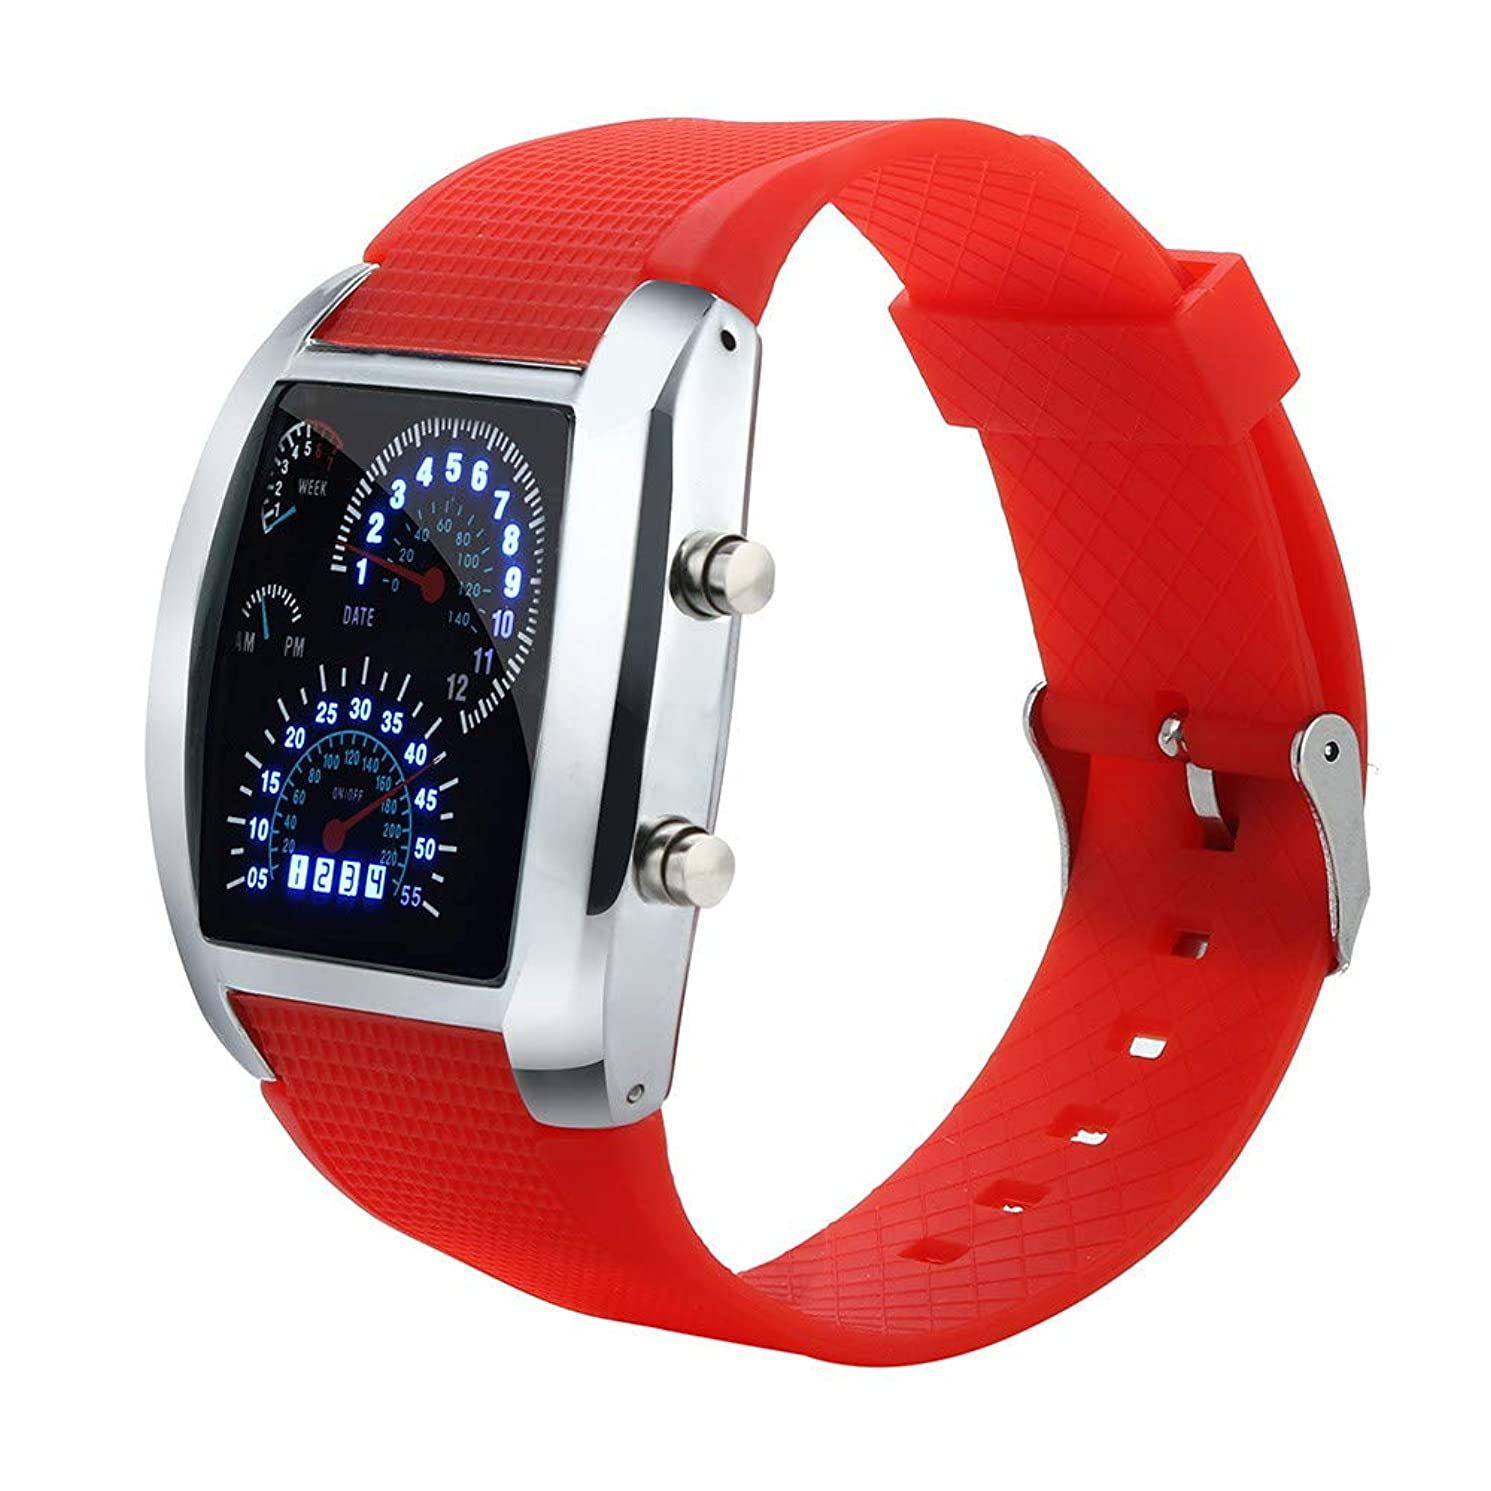 Men's Digital Sports Watch, LED Light Flash Turbo Speedometer Car Dial Meter Military Watch Classic Gifts